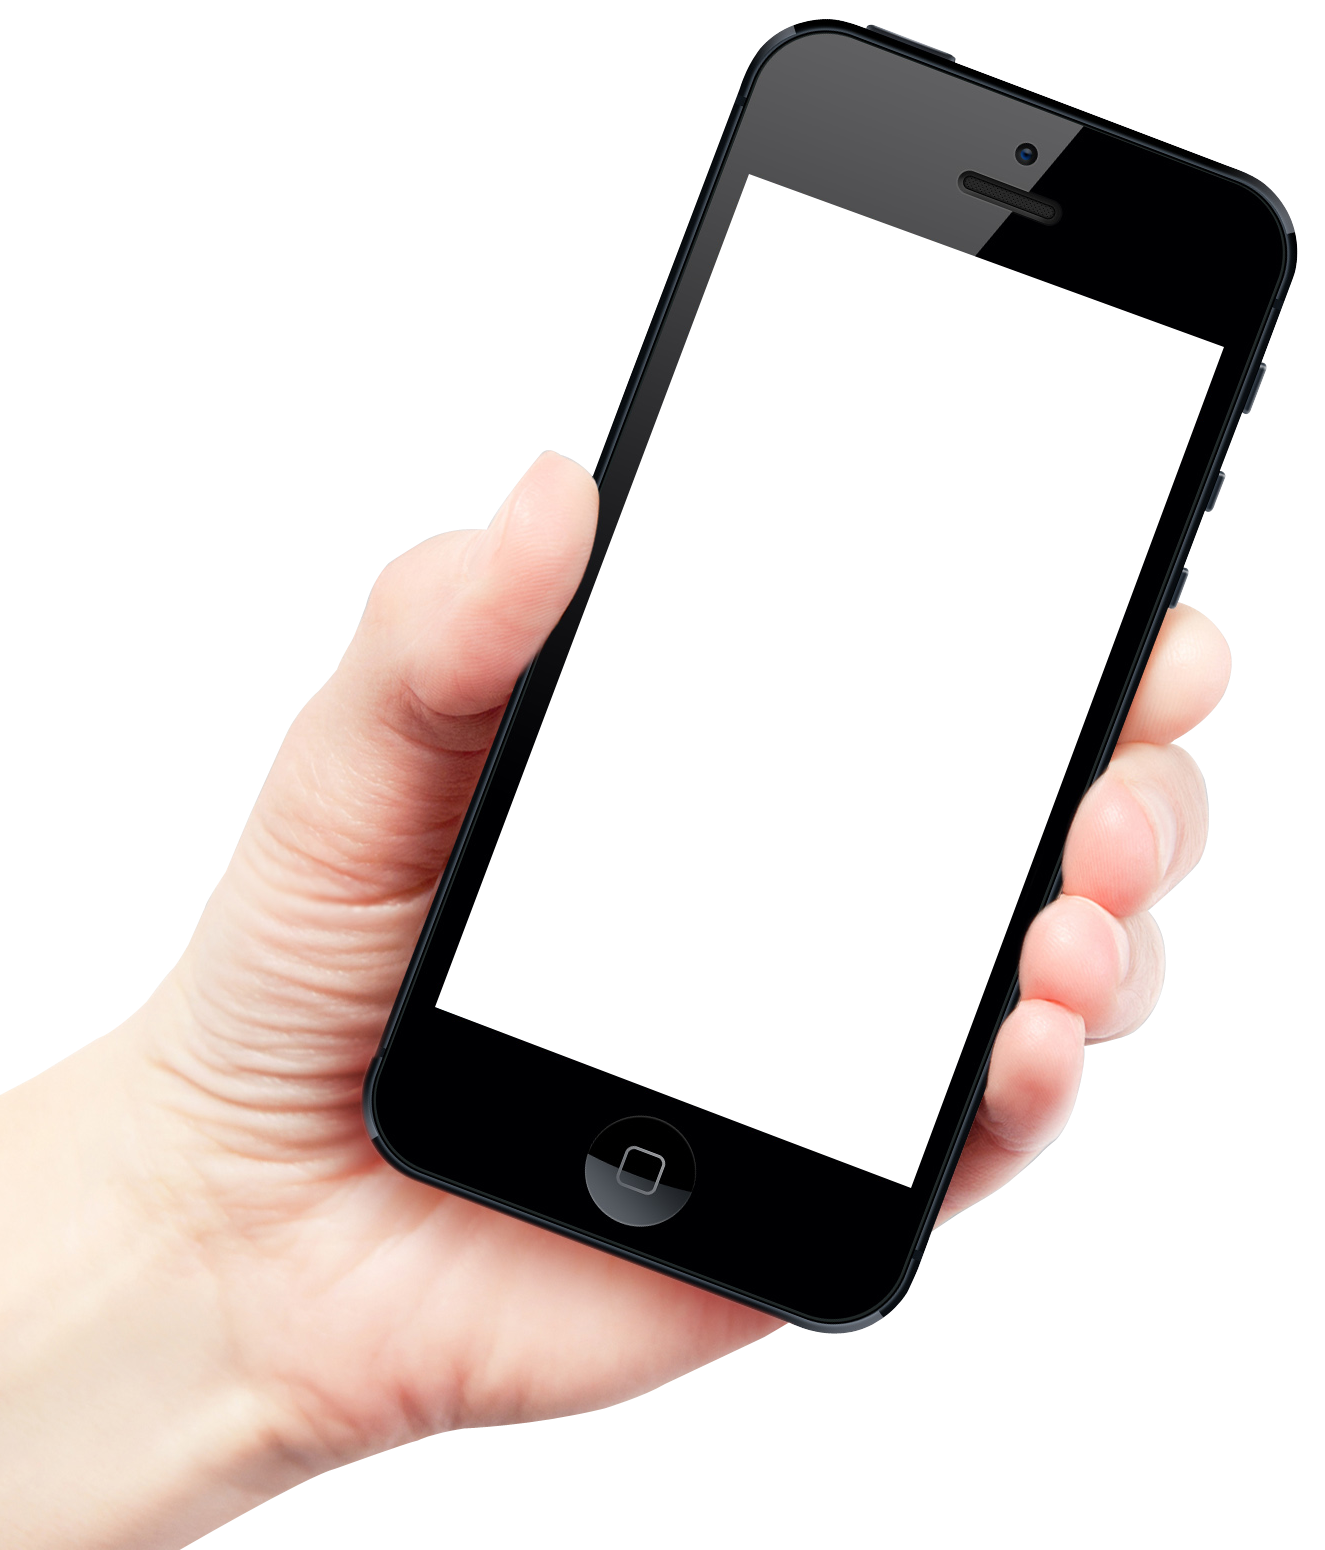 Hand holding cellphone png. Smartphone mobile image